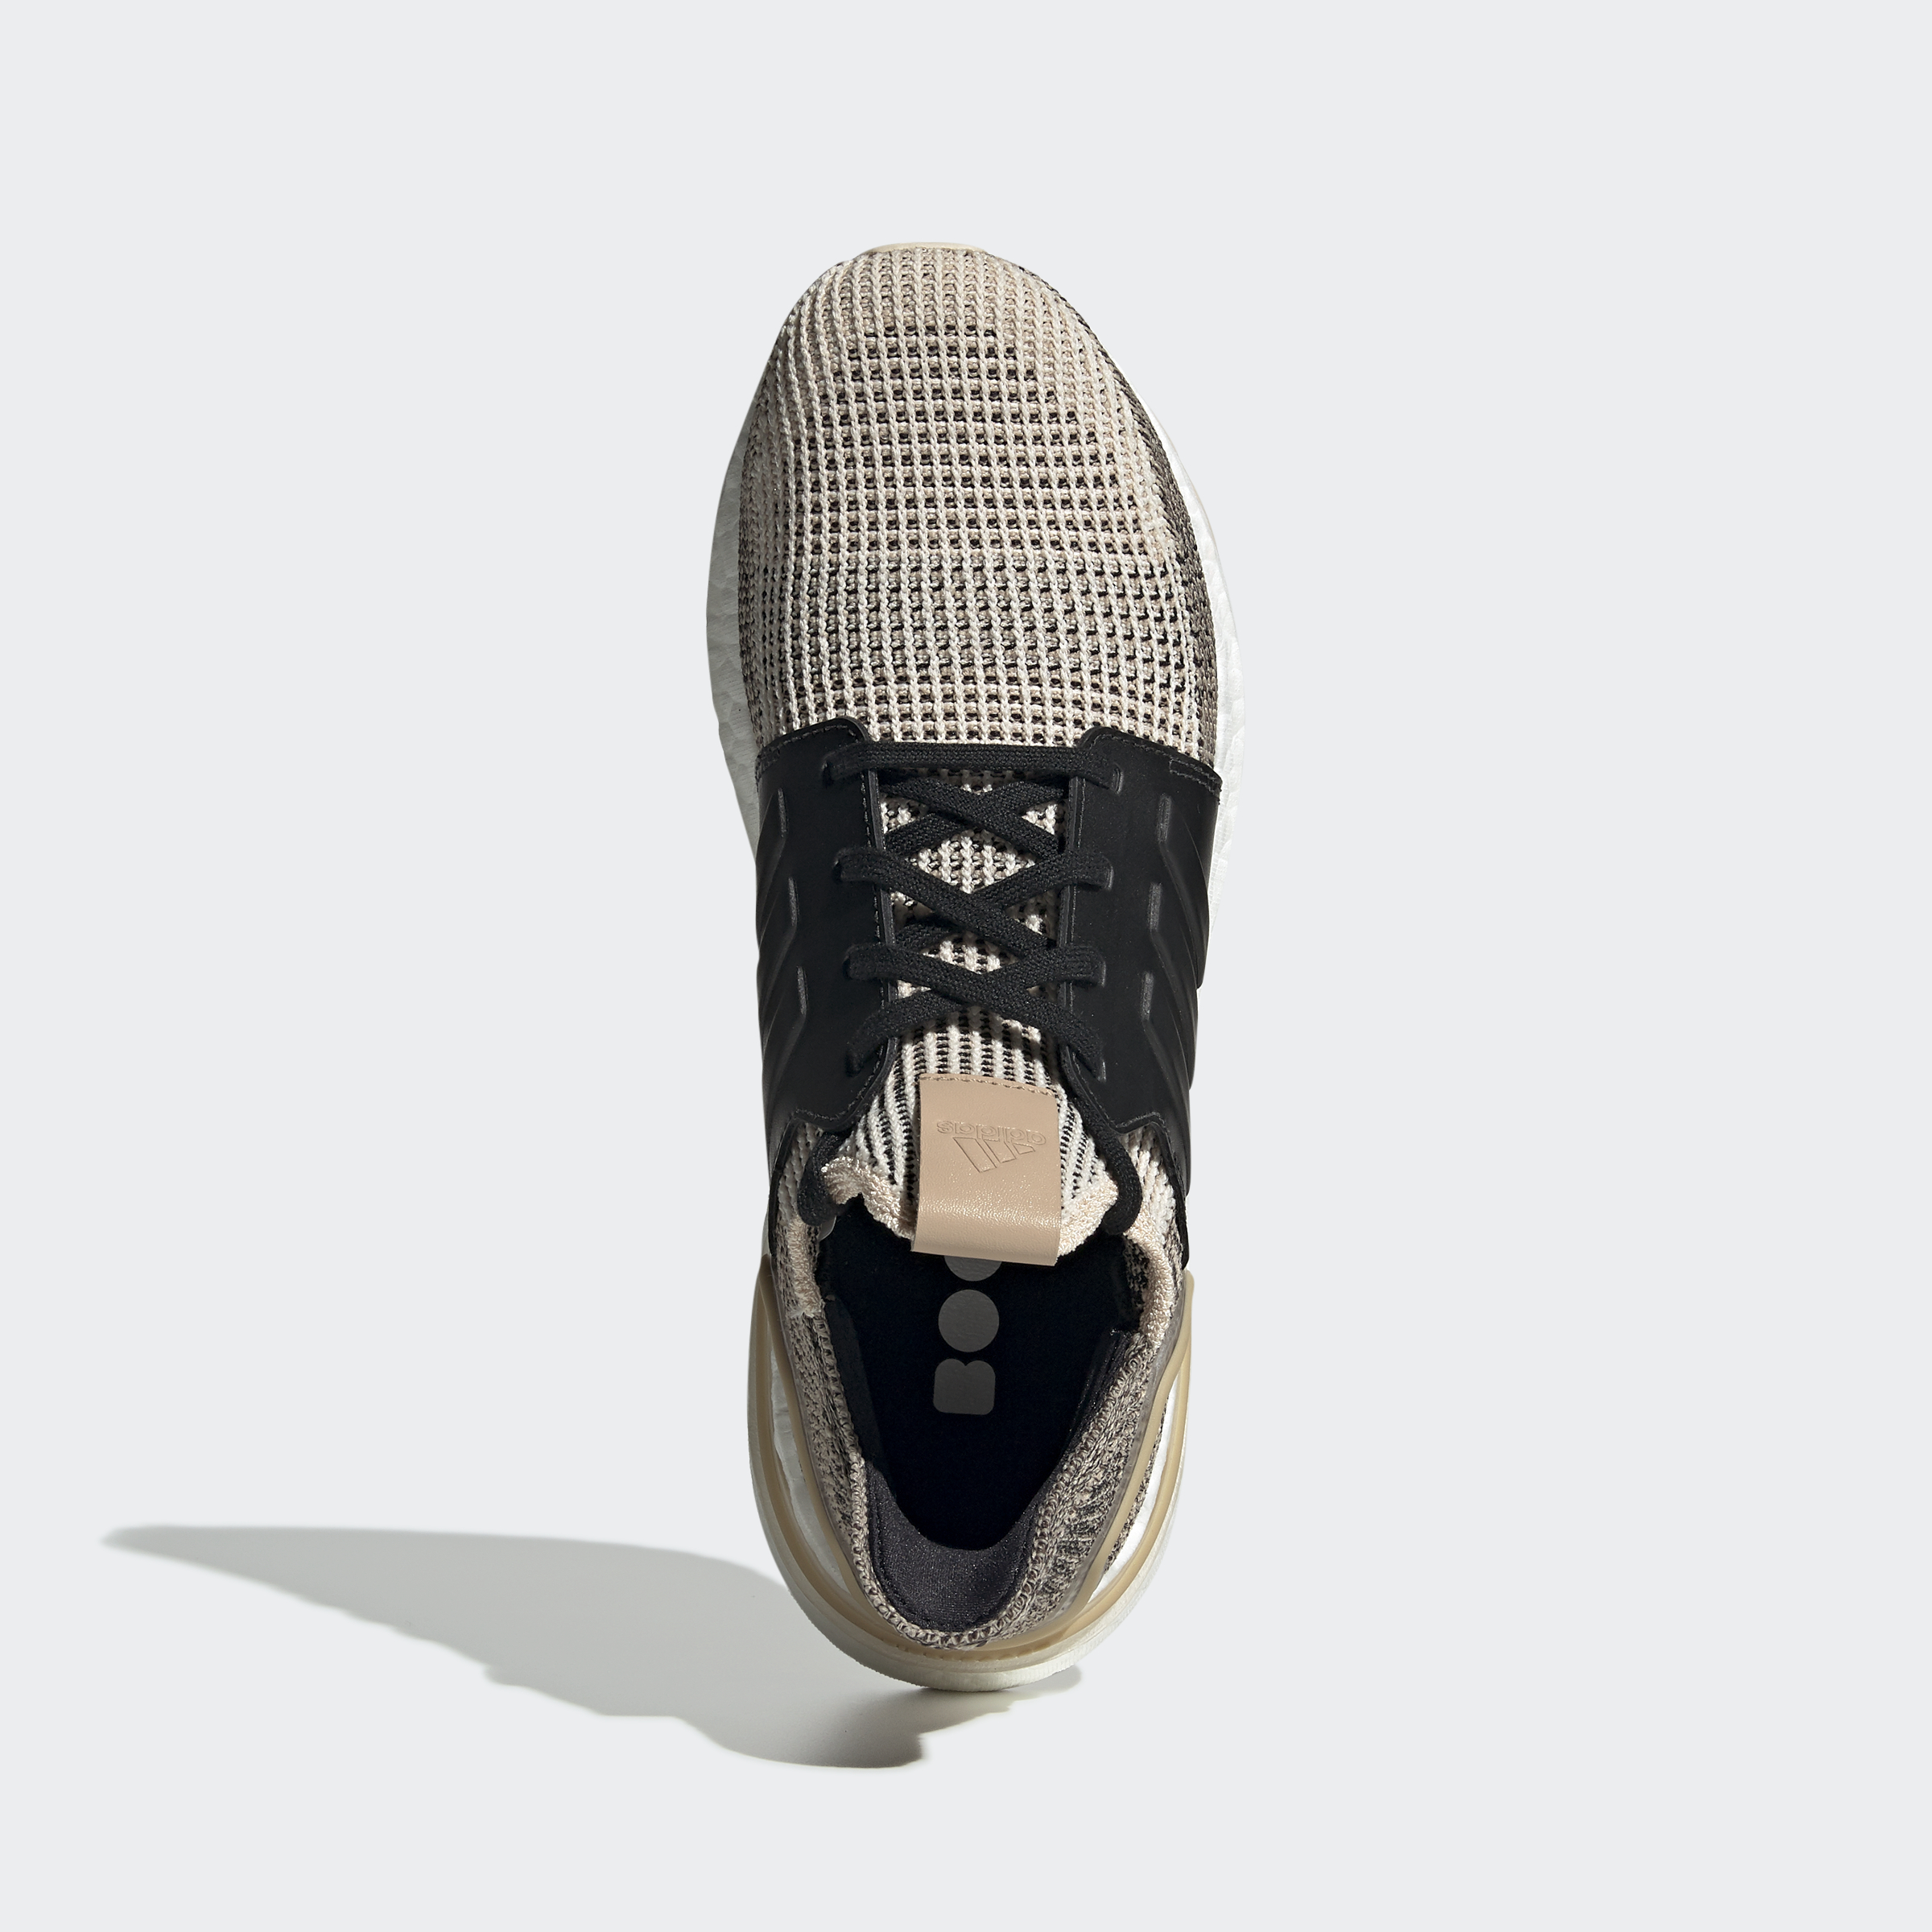 adidas-Ultraboost-19-Shoes-Athletic-amp-Sneakers thumbnail 67